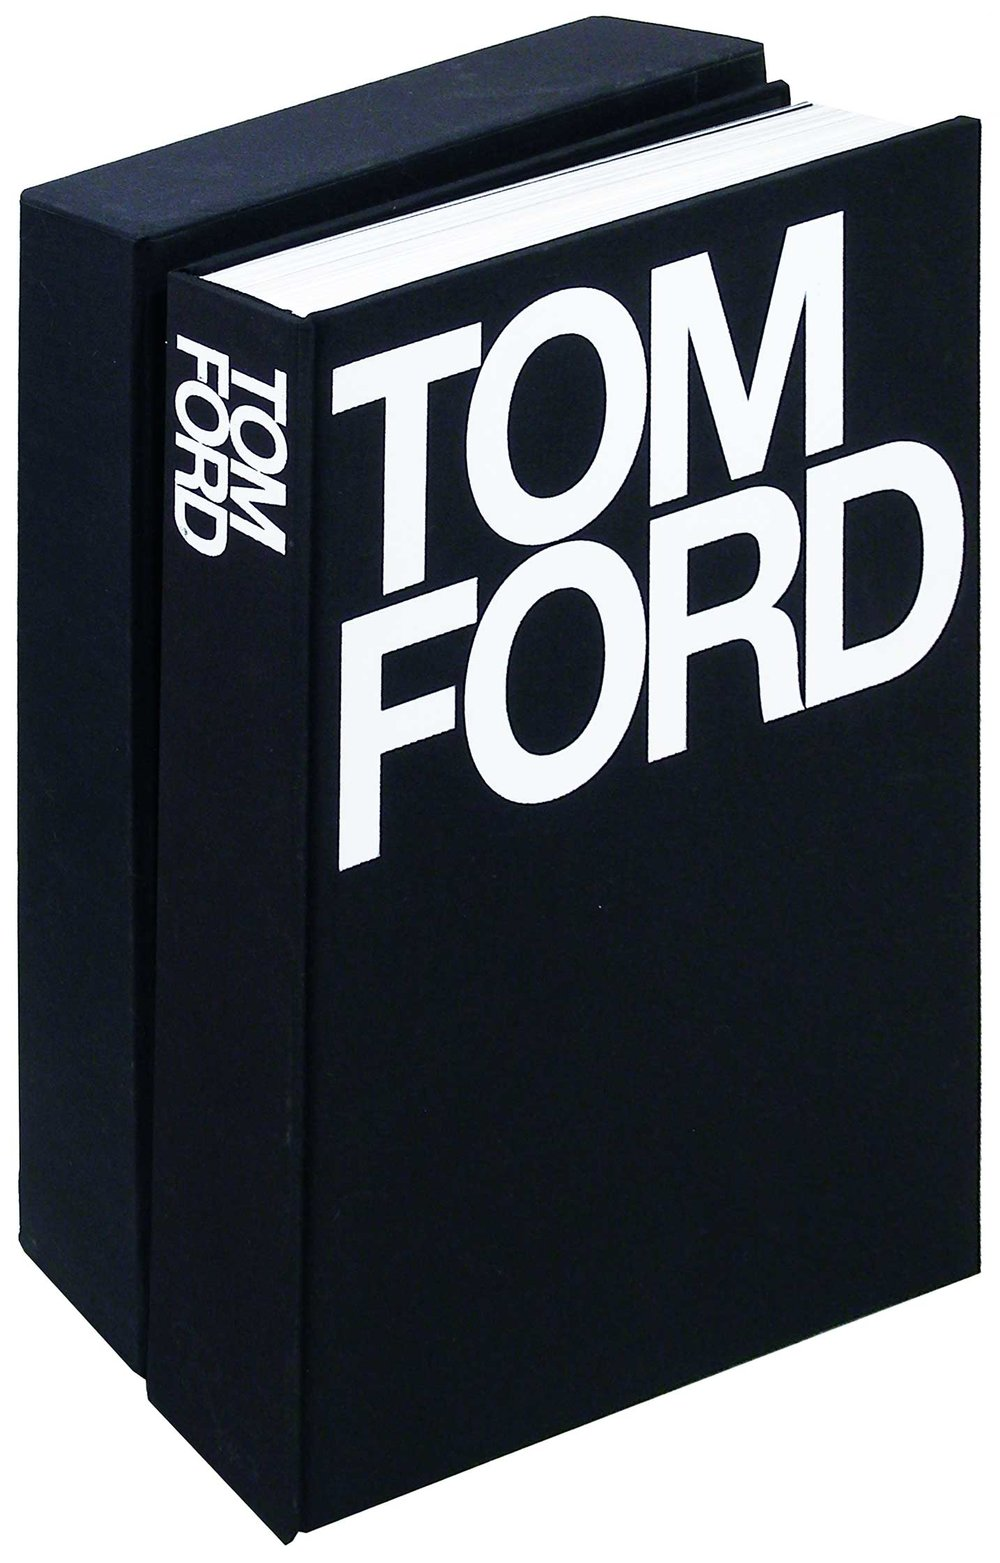 5. Tom Ford by Tom Ford